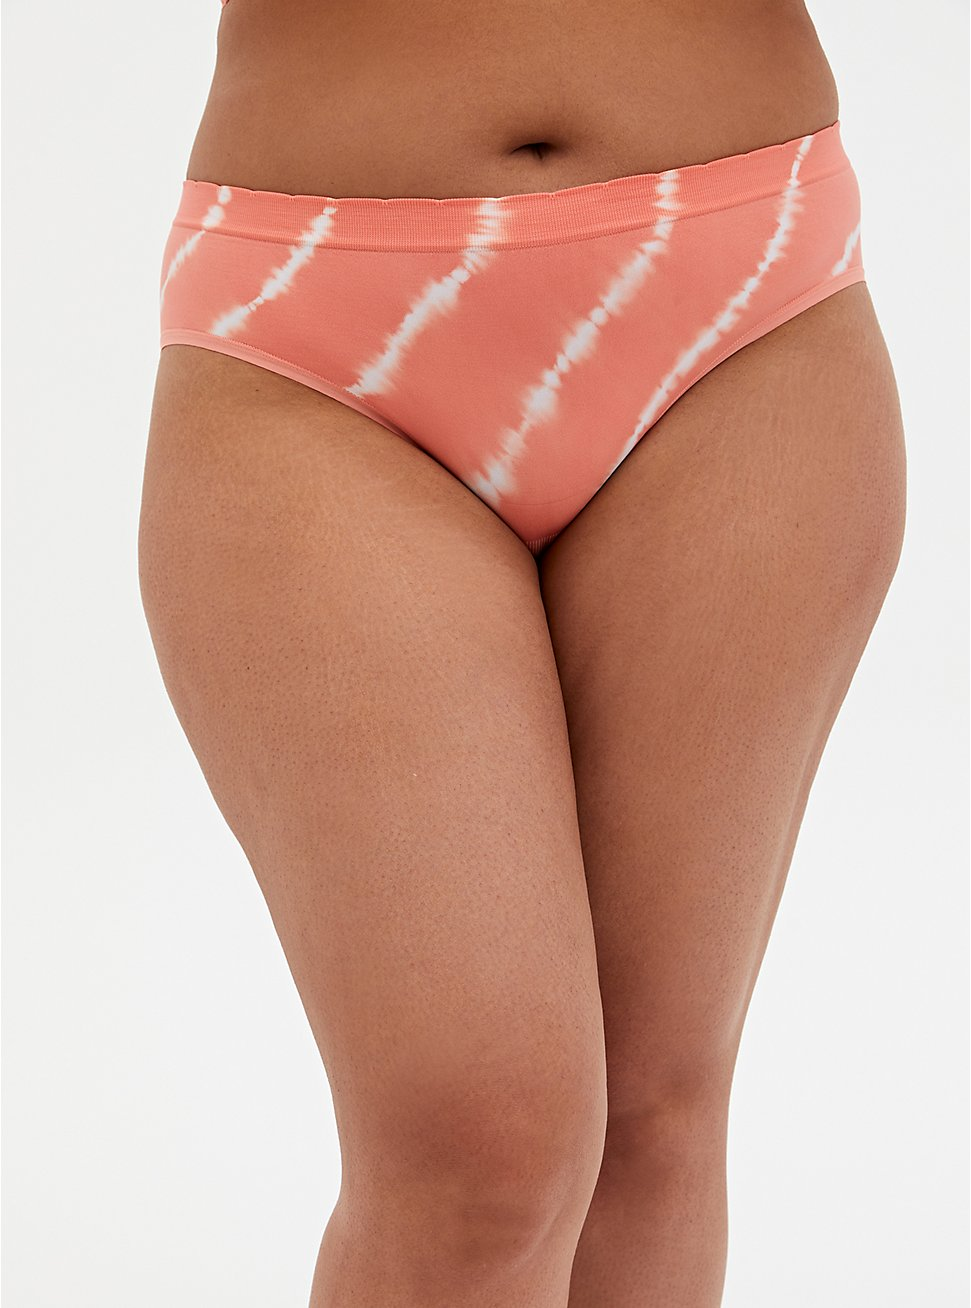 Coral Tie-Dye Seamless Hipster Panty , , hi-res